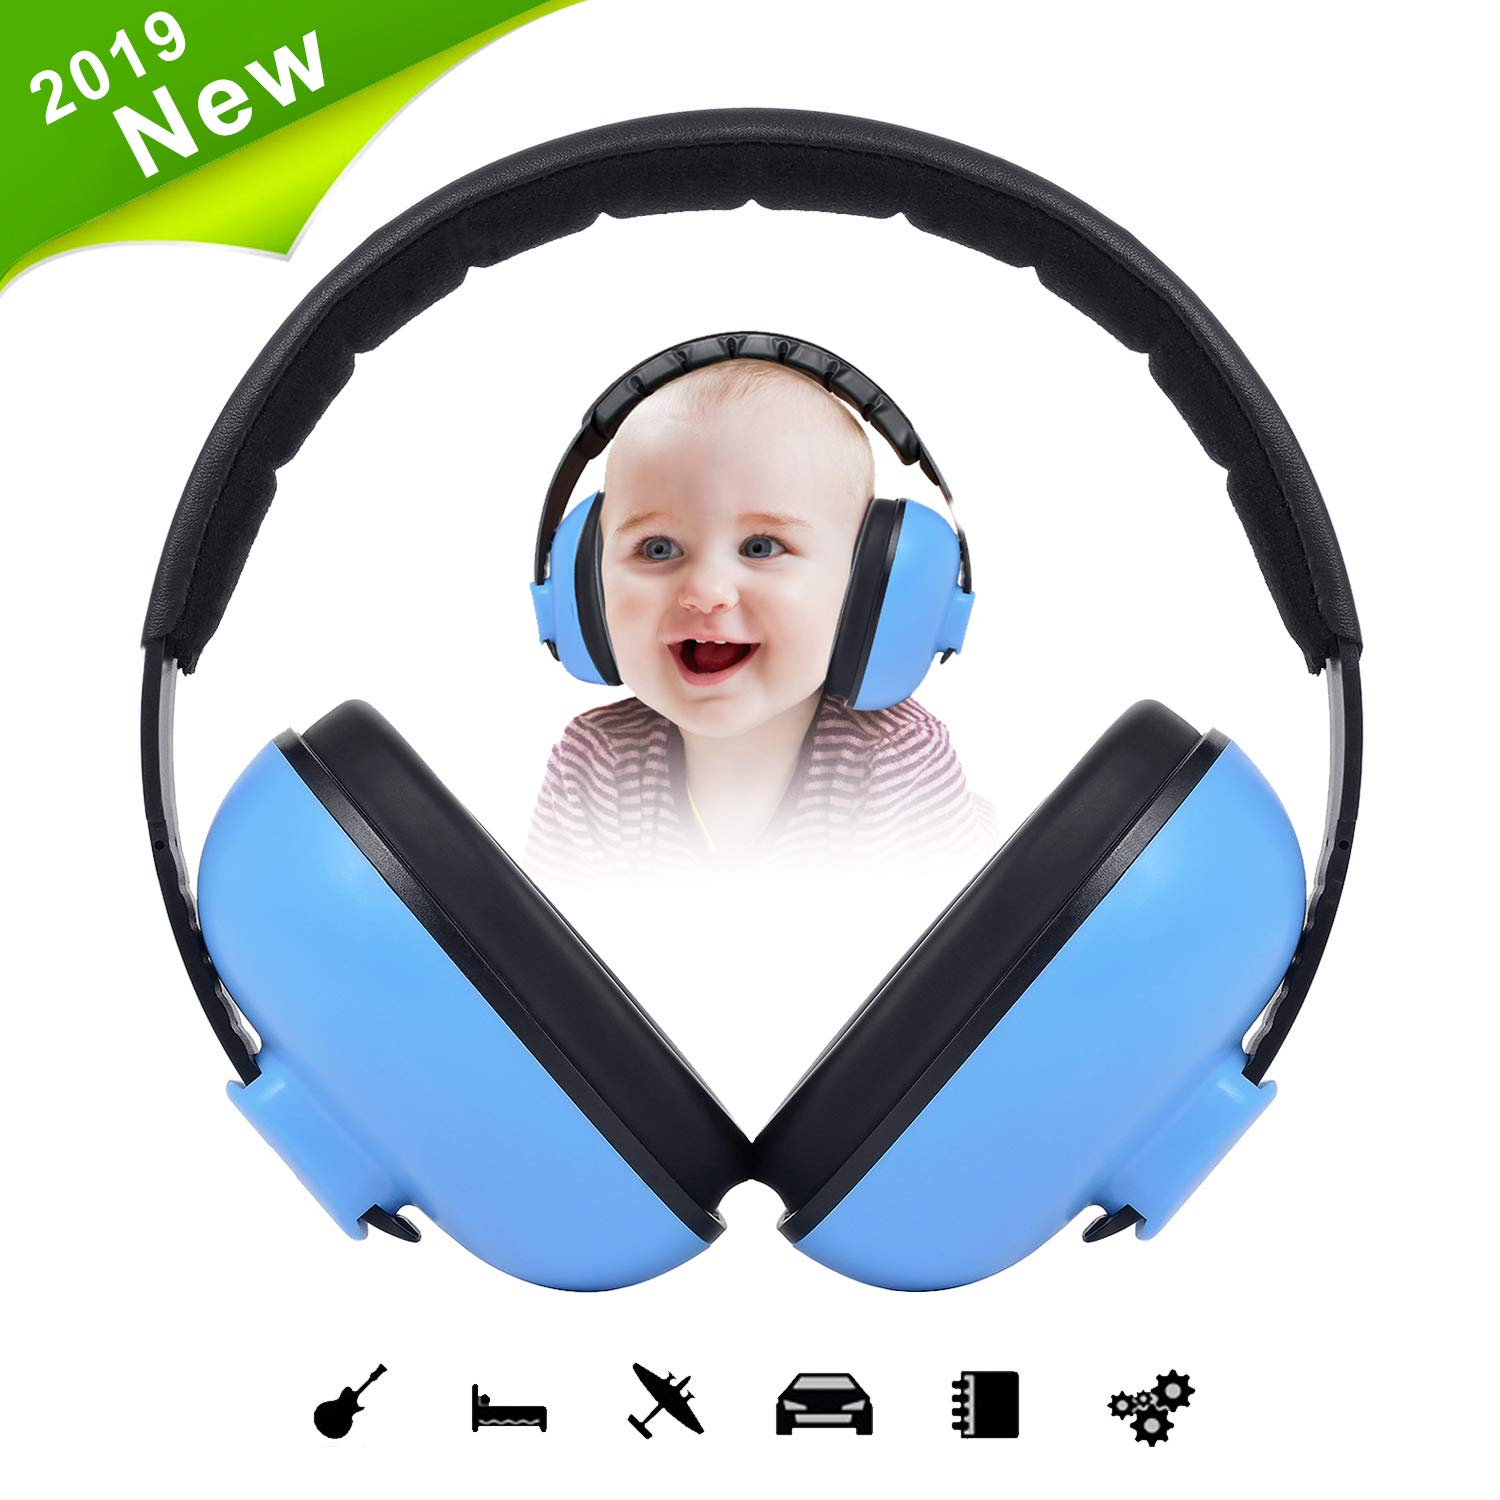 Baby Earmuffs Infant Hearing Protection, Baby Noise Cancelling Headphones, Special Designed Comfort Fit for 2 Months to 3 Years